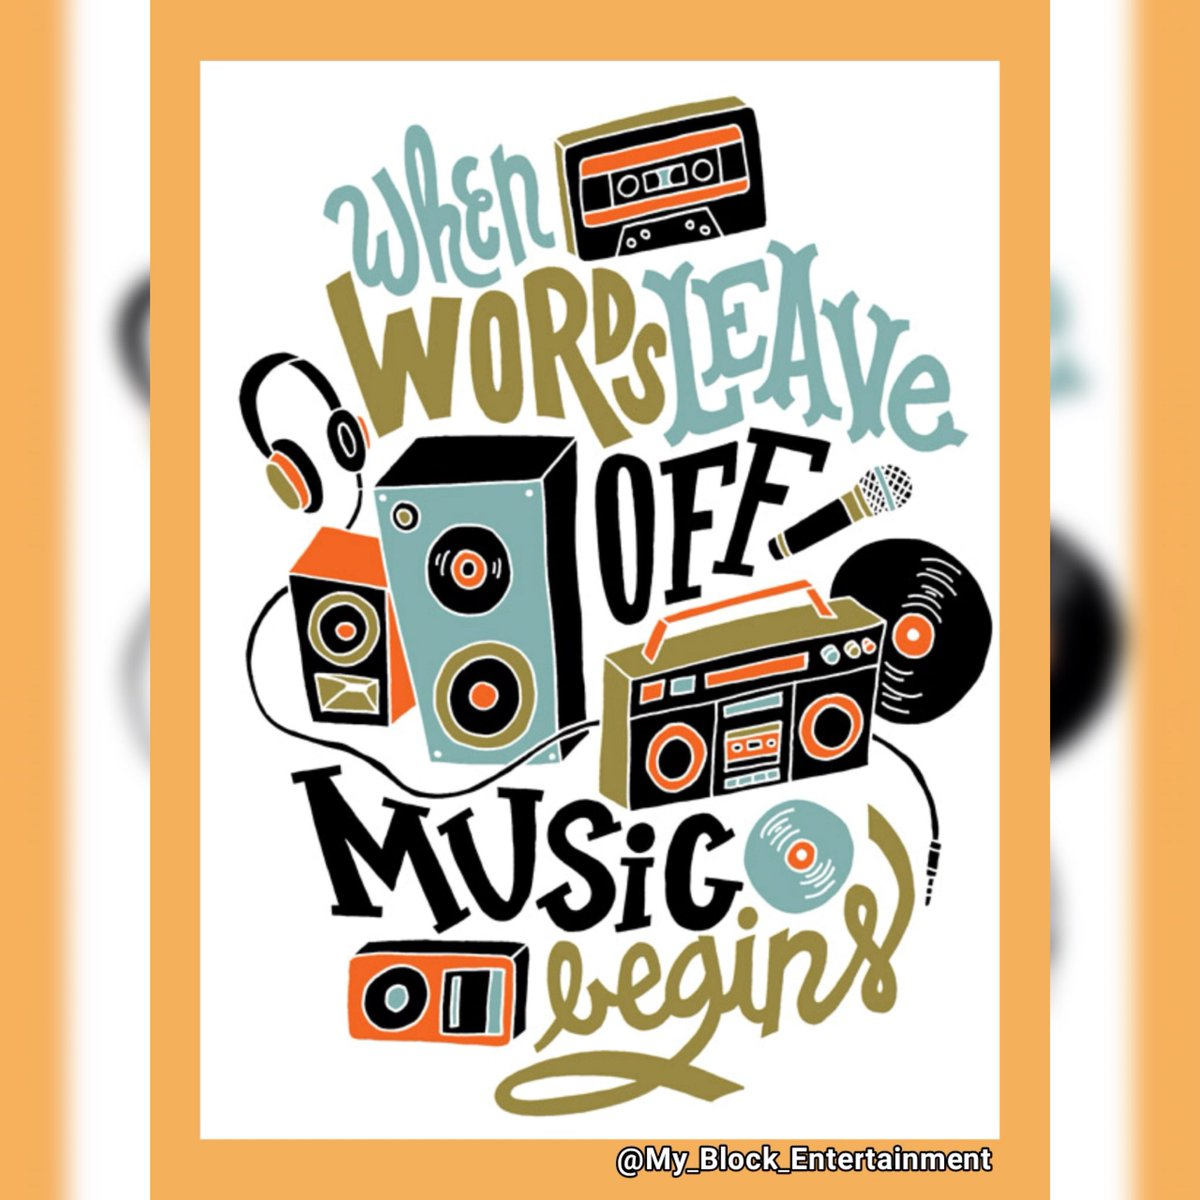 Music is the answer. #MusicQuote #MusicIsLove #MusicStillMatters #MusicHeals #MusicLife #NewMusic #MusicForever #MusicVibes #MusicSavesLives<br>http://pic.twitter.com/fMvz4MUBqy